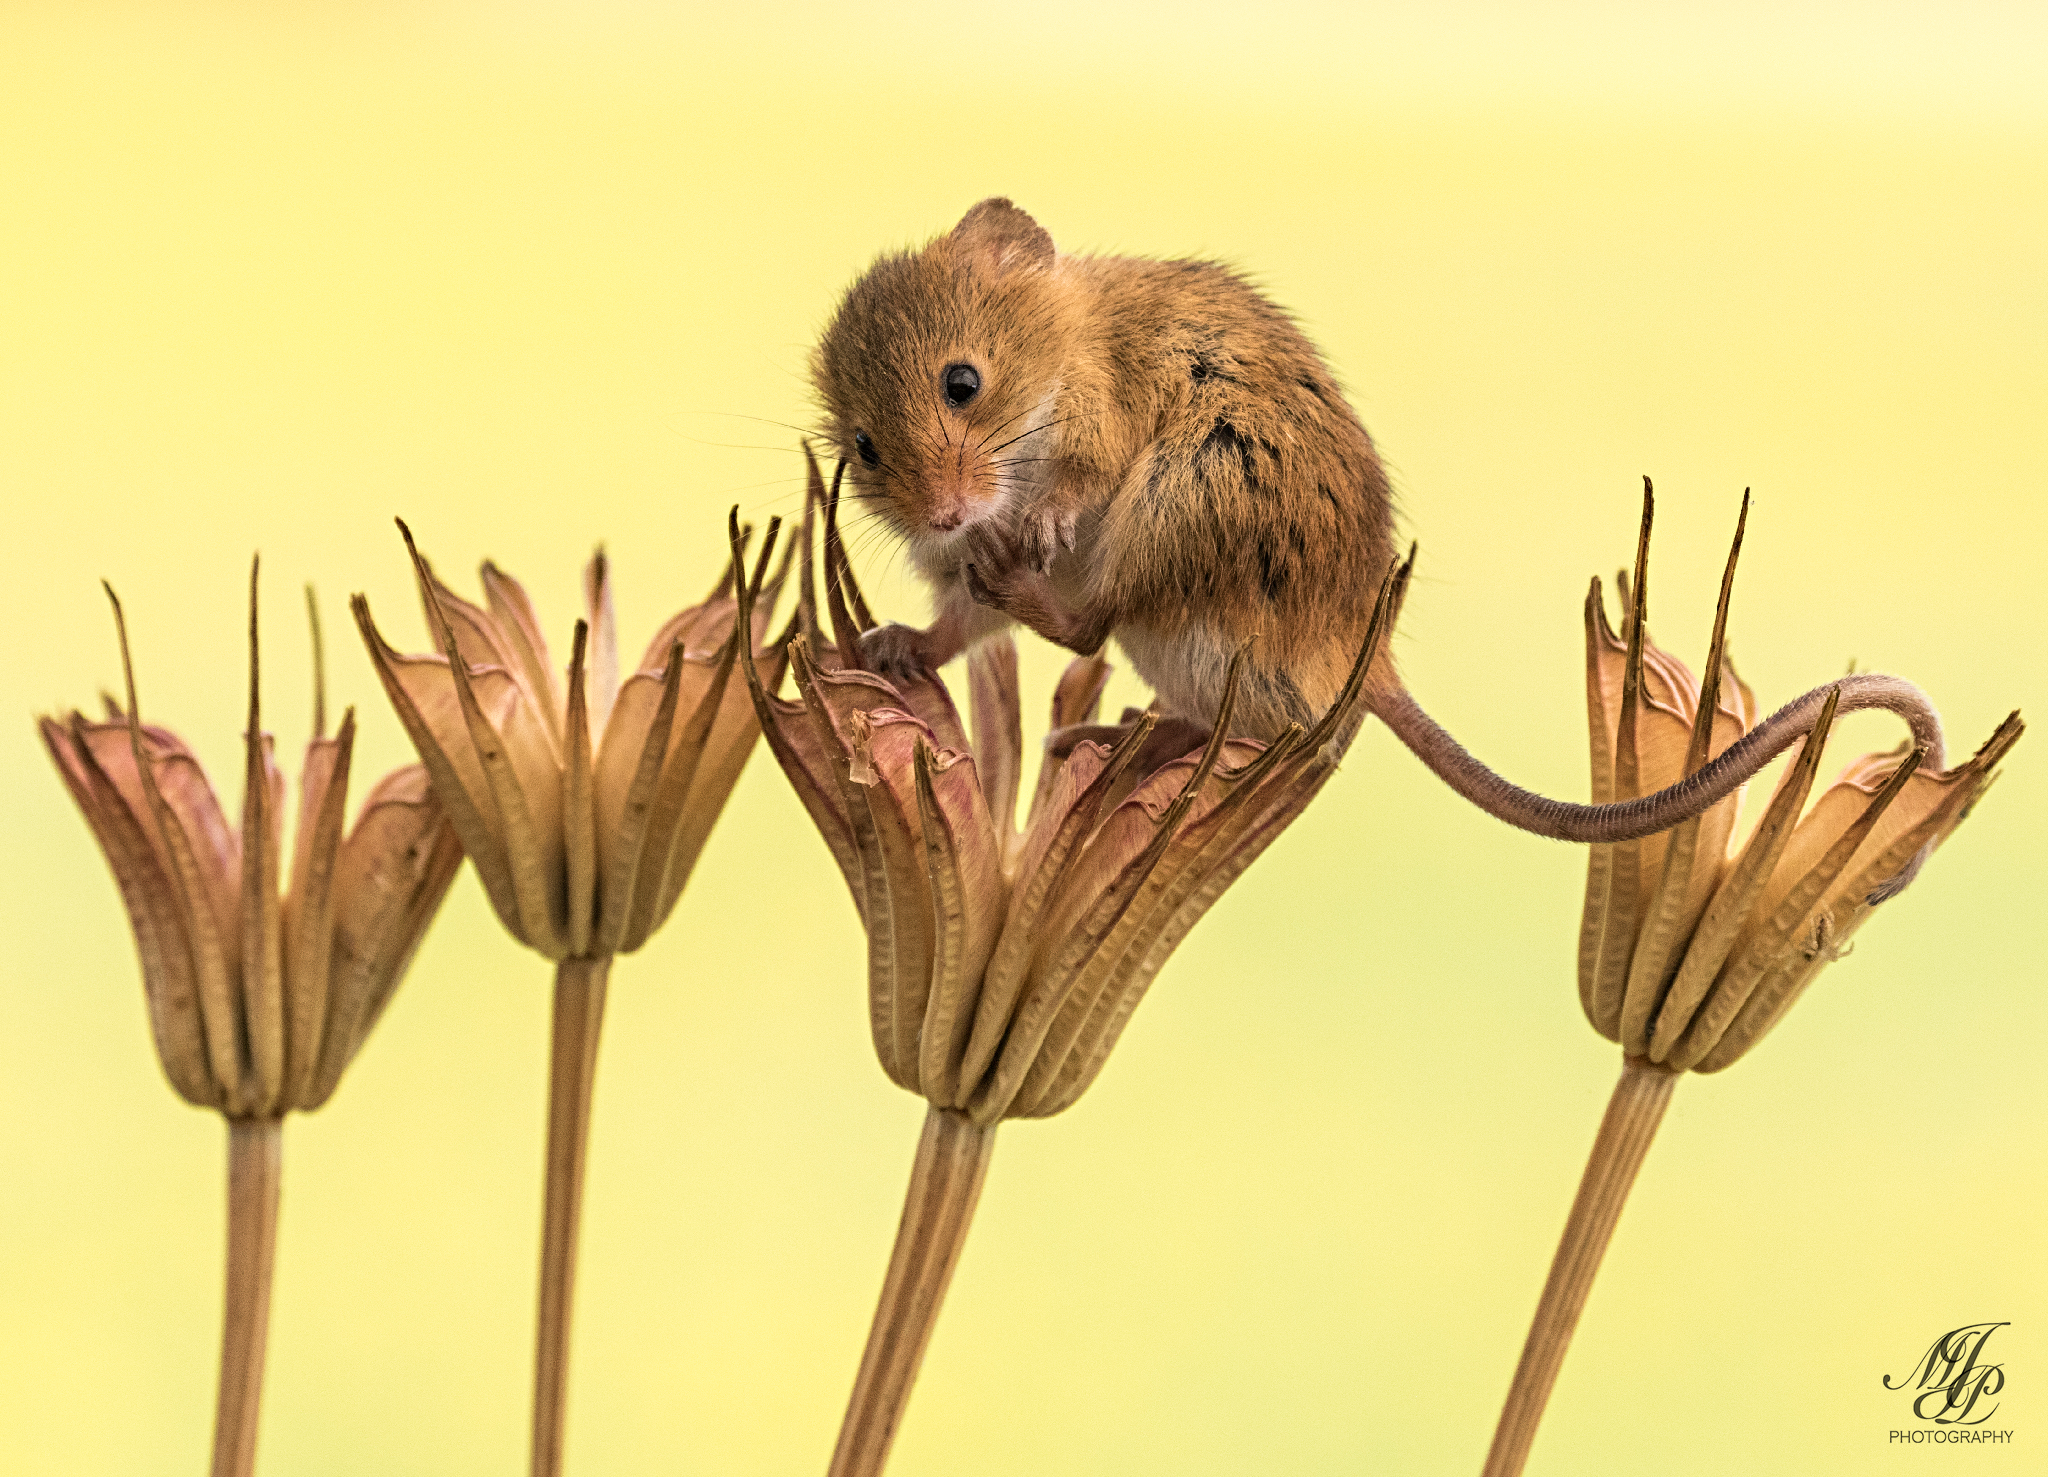 Harvest mice workshop